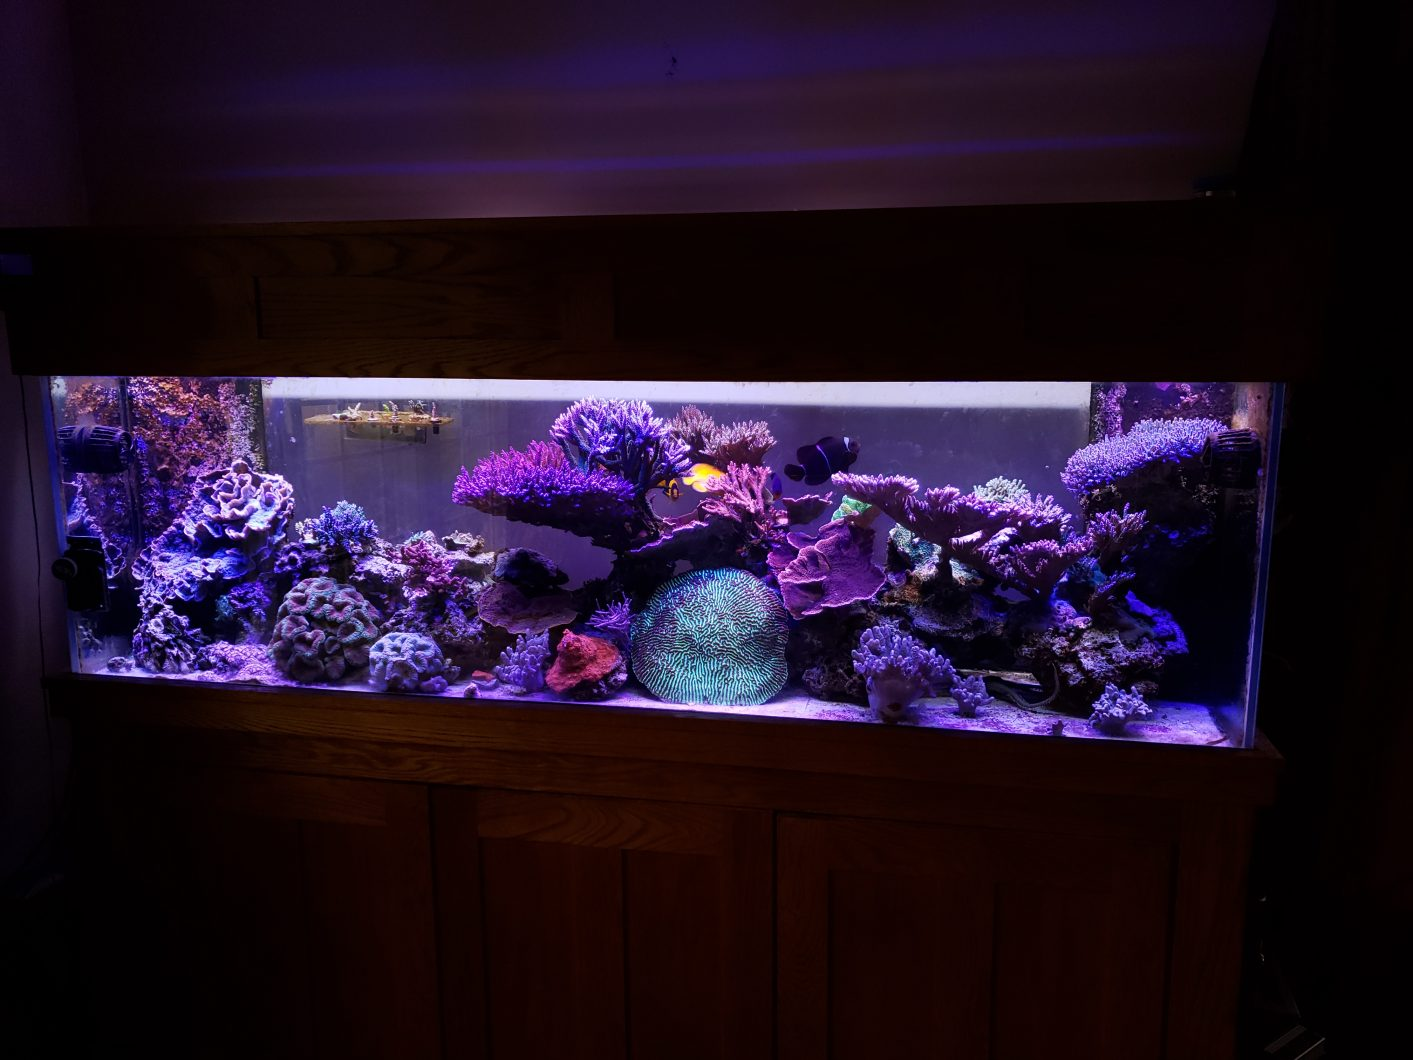 orphek-or90-bar-led-over-6- foot-wide-135g-sps-dominated-reef